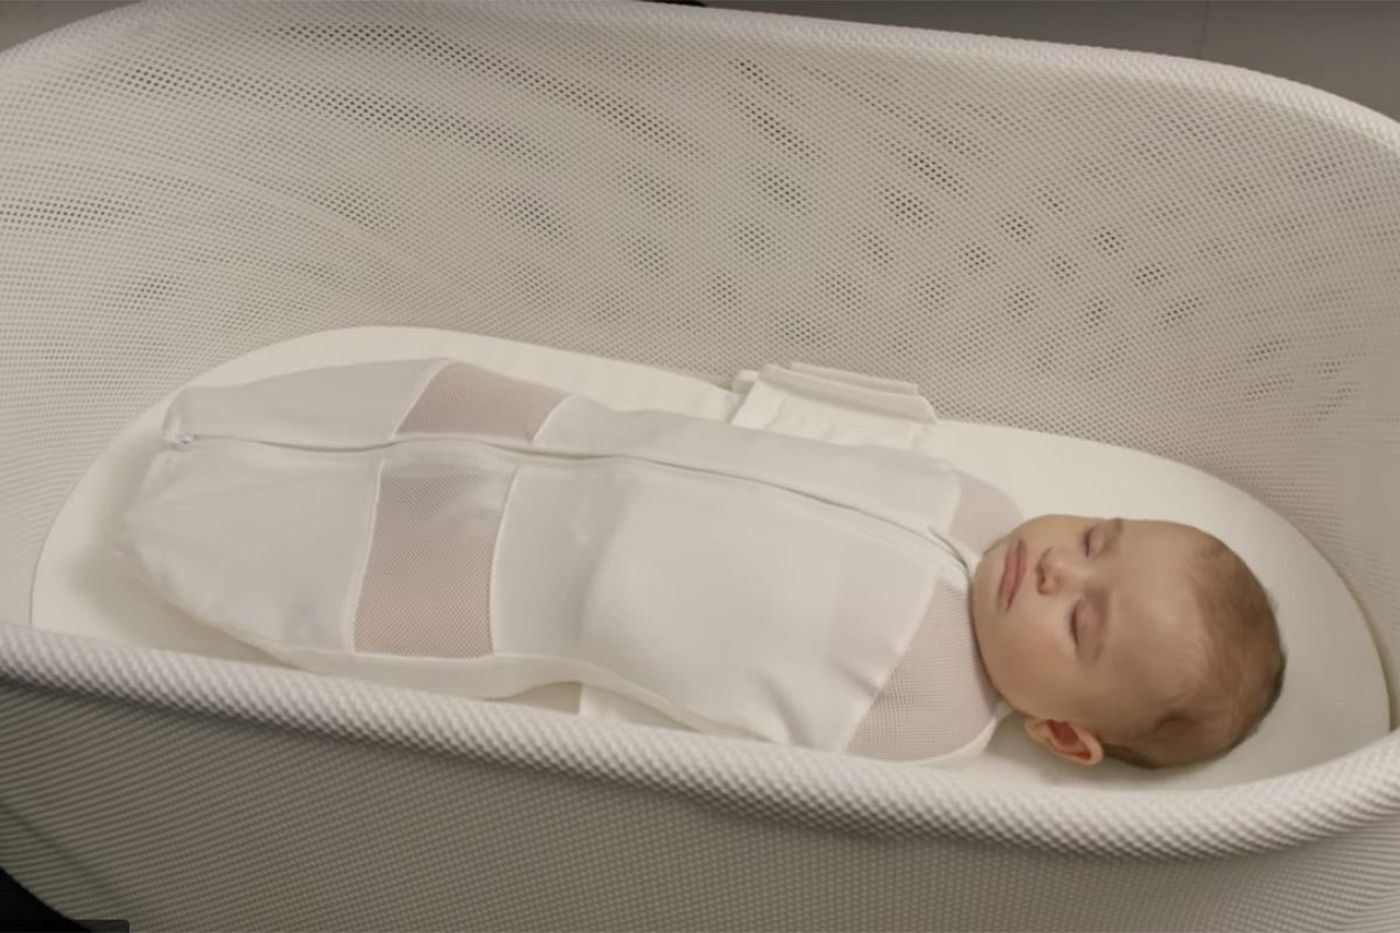 The problem with Harvey Karp's $1,160 bassinet